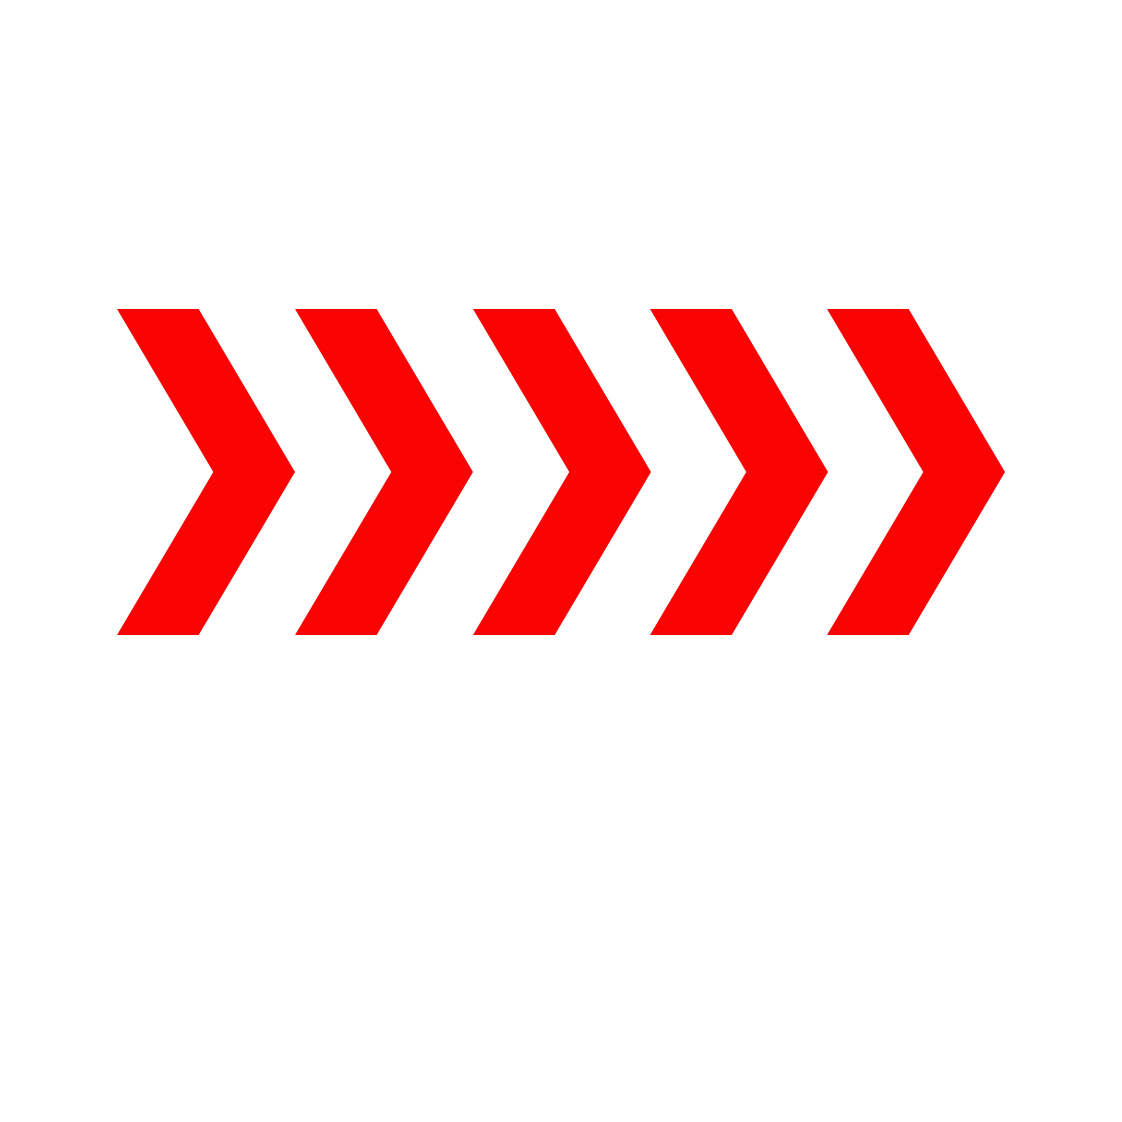 red arrow symbol png